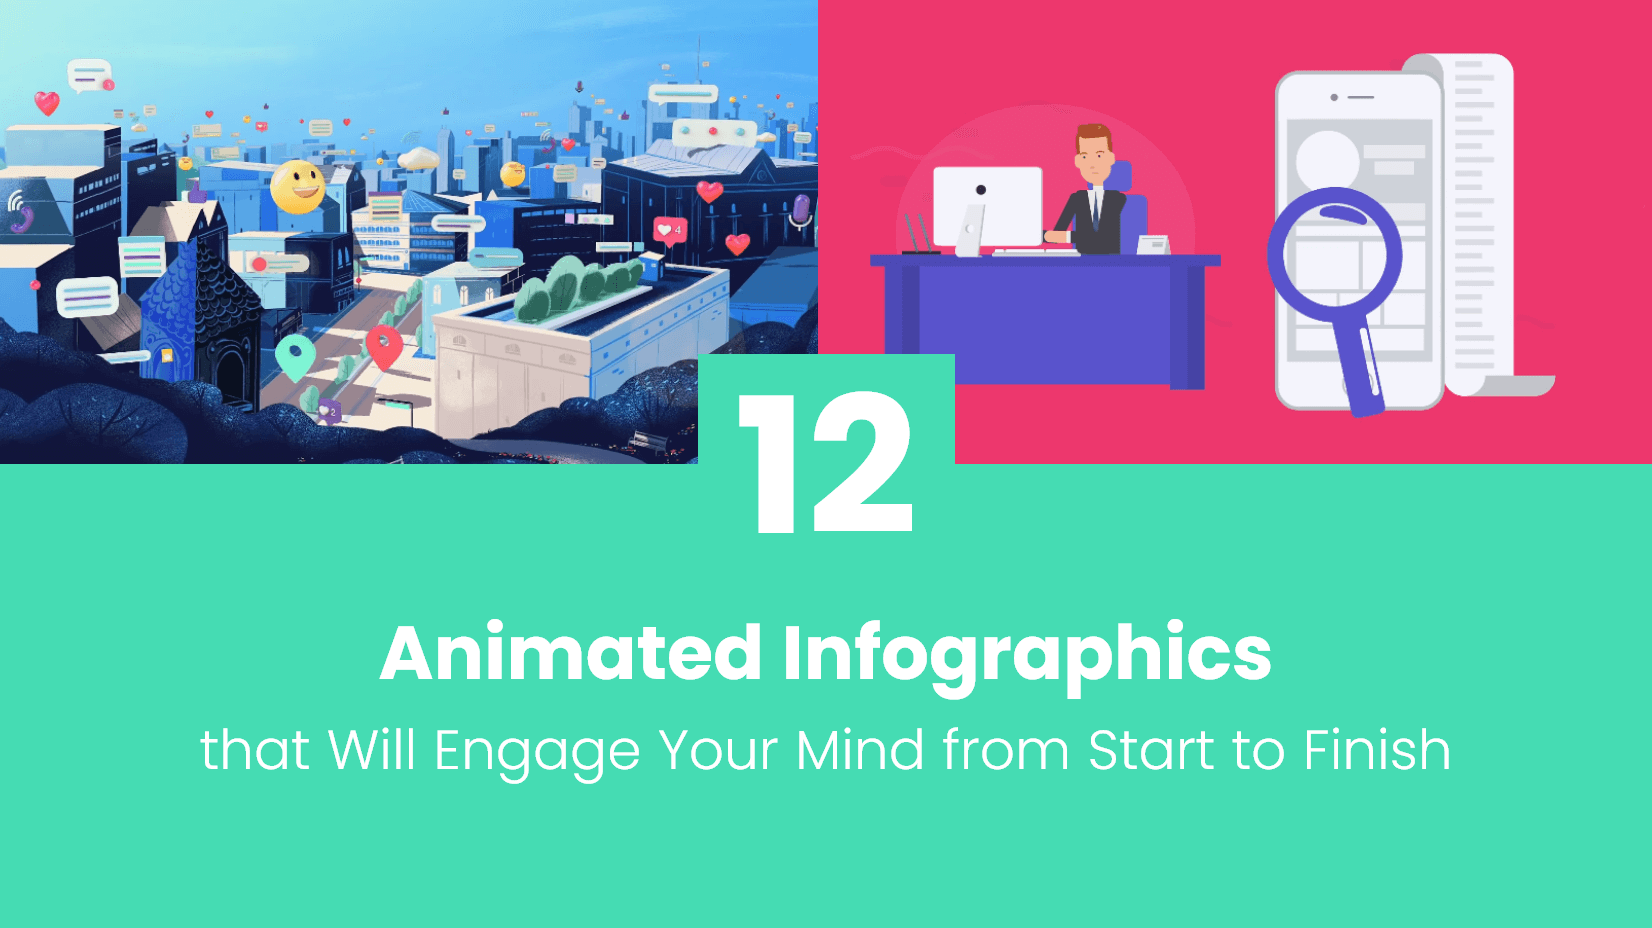 12 animated infographics that will engage your mind from start to finish